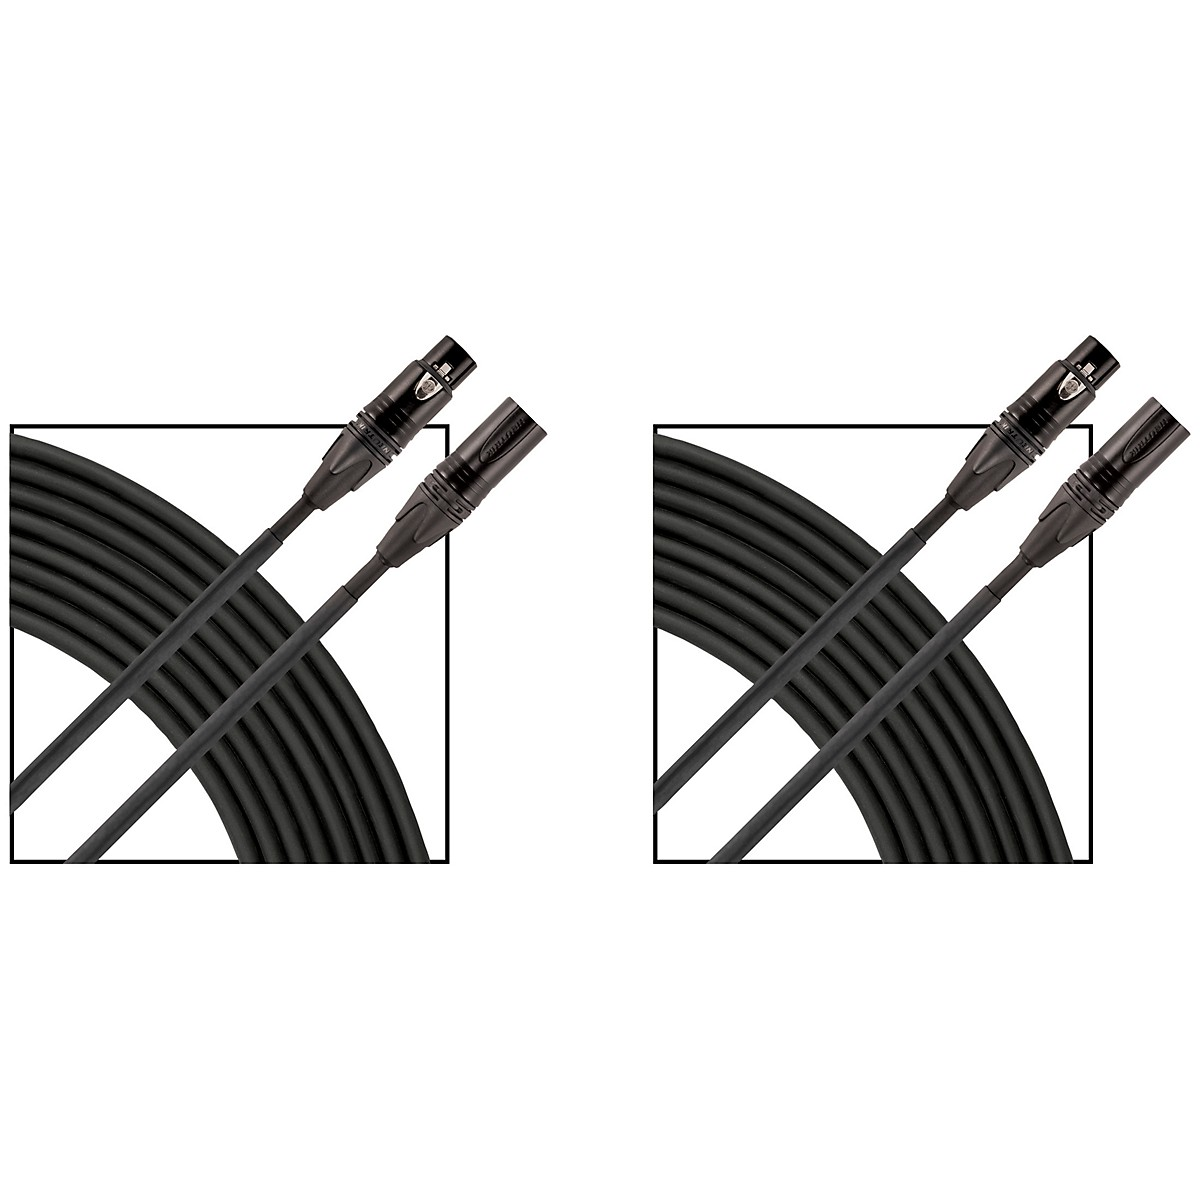 Livewire Advantage Microphone Cable 2 Pack - 15 ft.